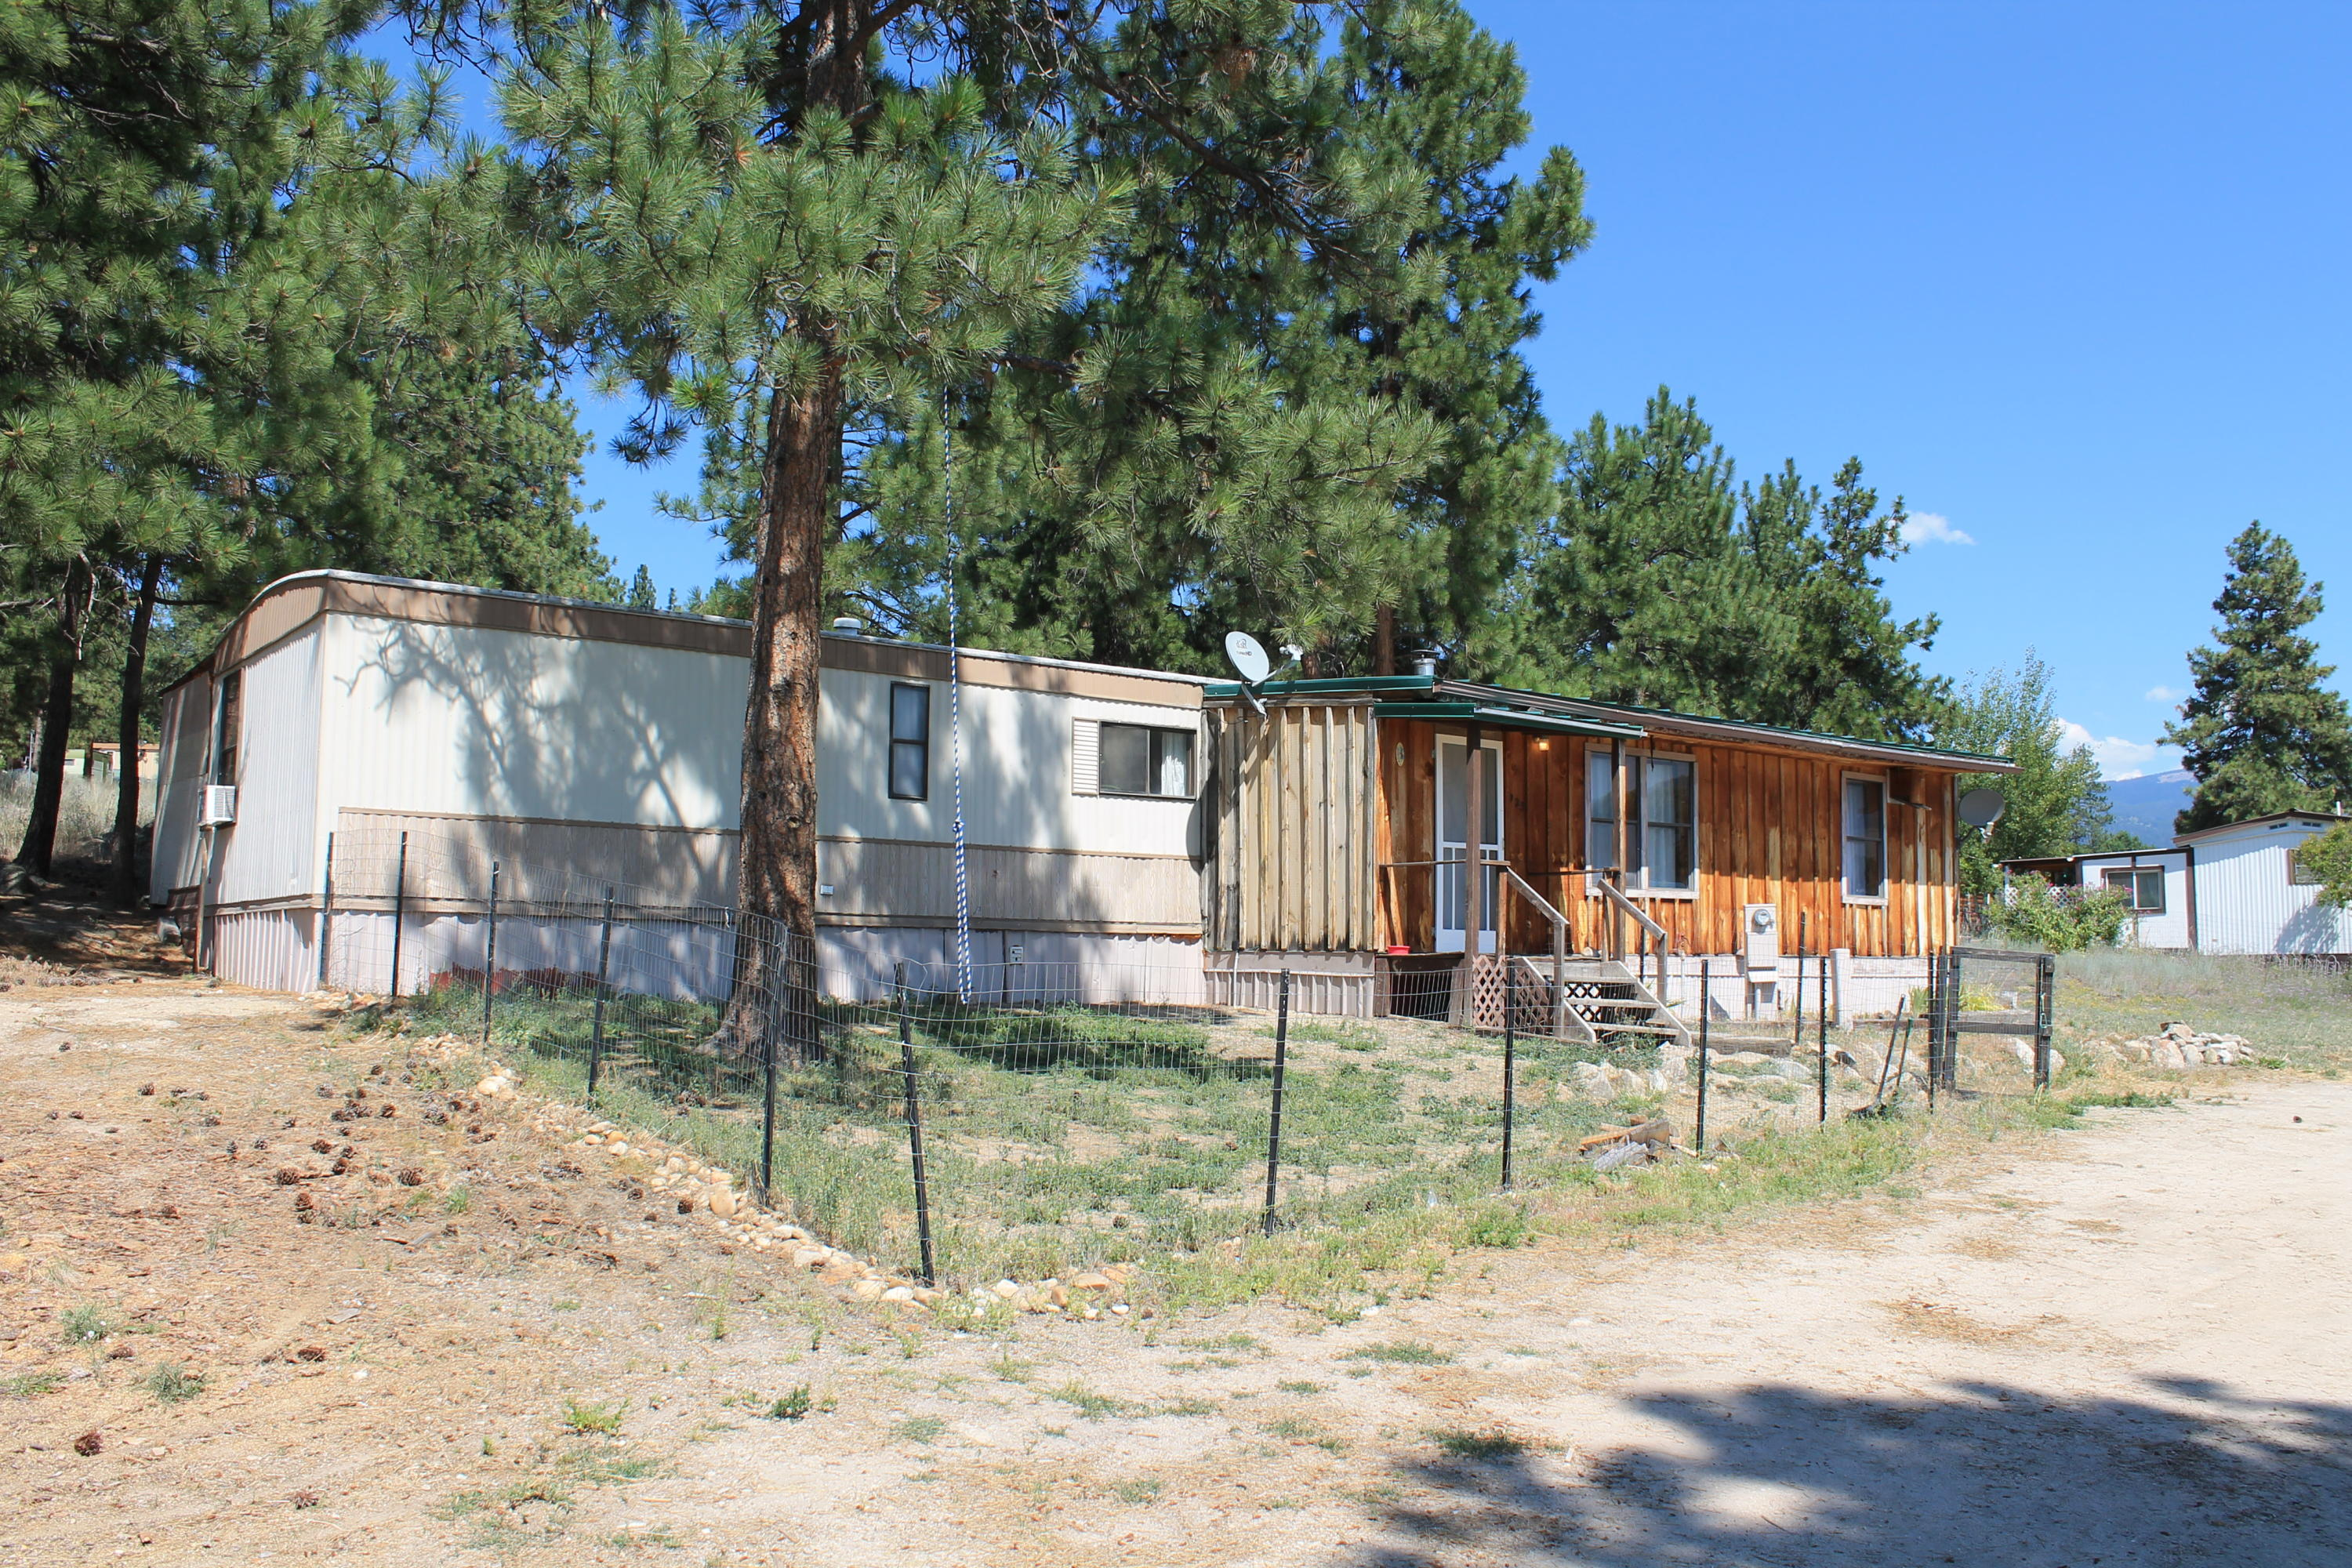 Enjoy all the Bitterroot has to offer from this conveniently located home just minutes from access to National Forest, the Bitterroot River, and downtown Hamilton. When you're done playing in the woods warm up by the cozy wood fire place or kick back in the front yard and watch the sunset over Como Peaks. This Single wide trailer with multiple additions displays pride of ownership throughout. All at an affordable price point!  Lot rent is $315 per month and includes water, septic, garbage service, and snow removal. Shed on property stays.Two of the bedrooms are non-conforming.Please call Haley Schultz at 406-546-6448, or your real estate professional.